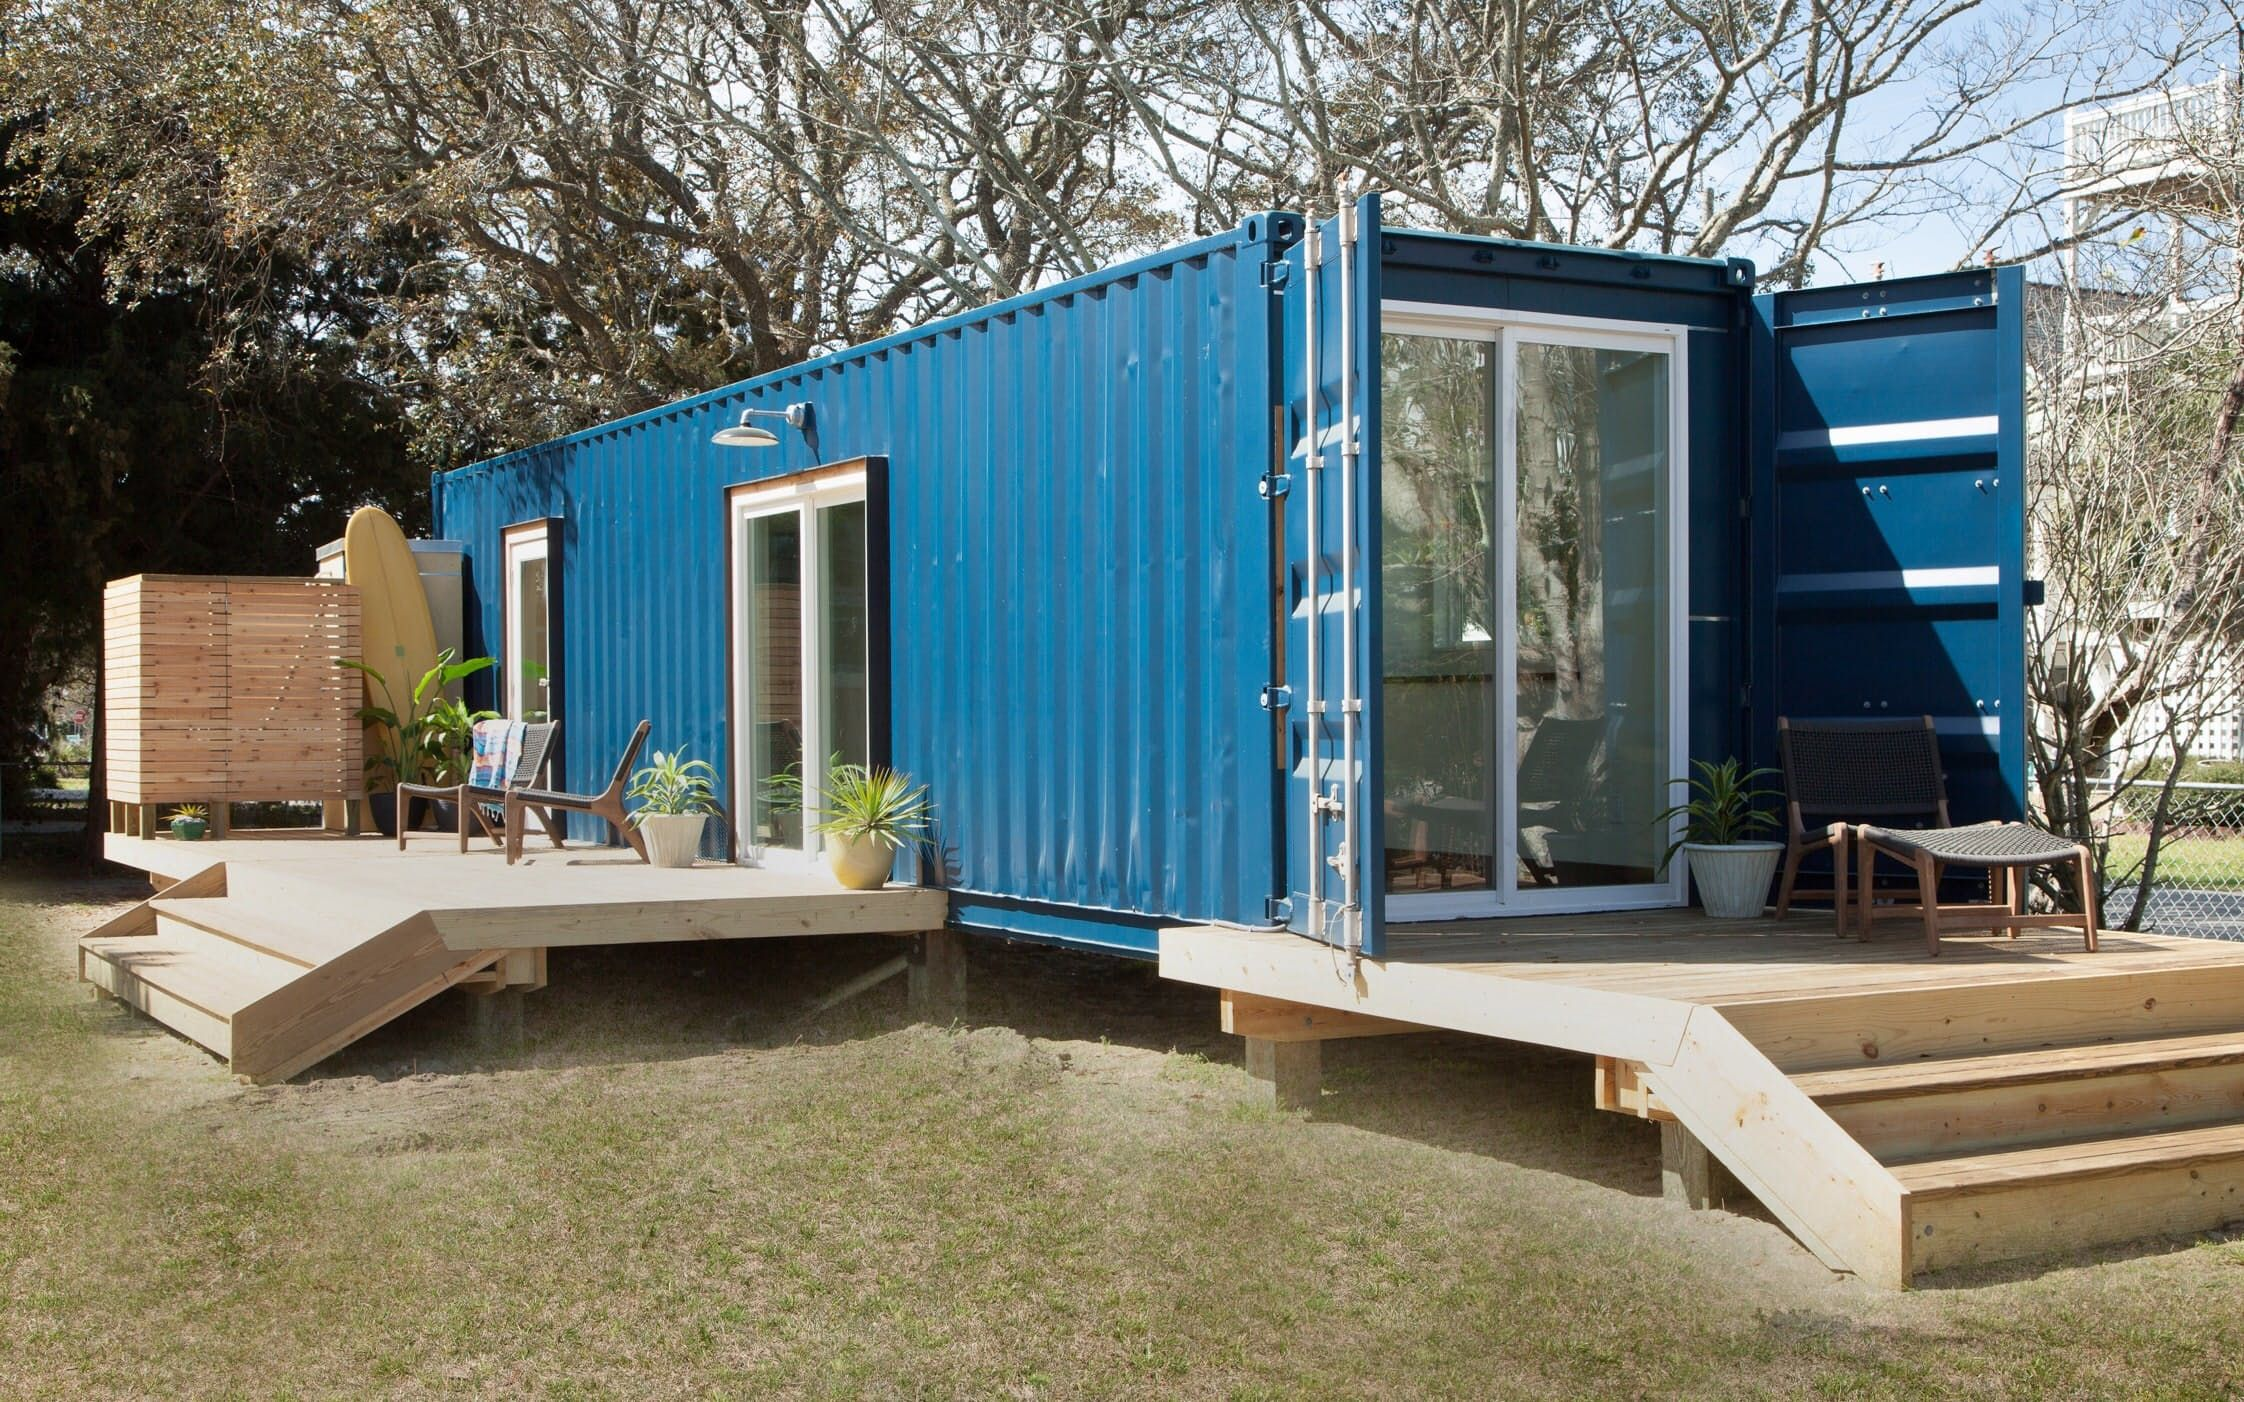 Shipping Container Turned Modern Beach Home